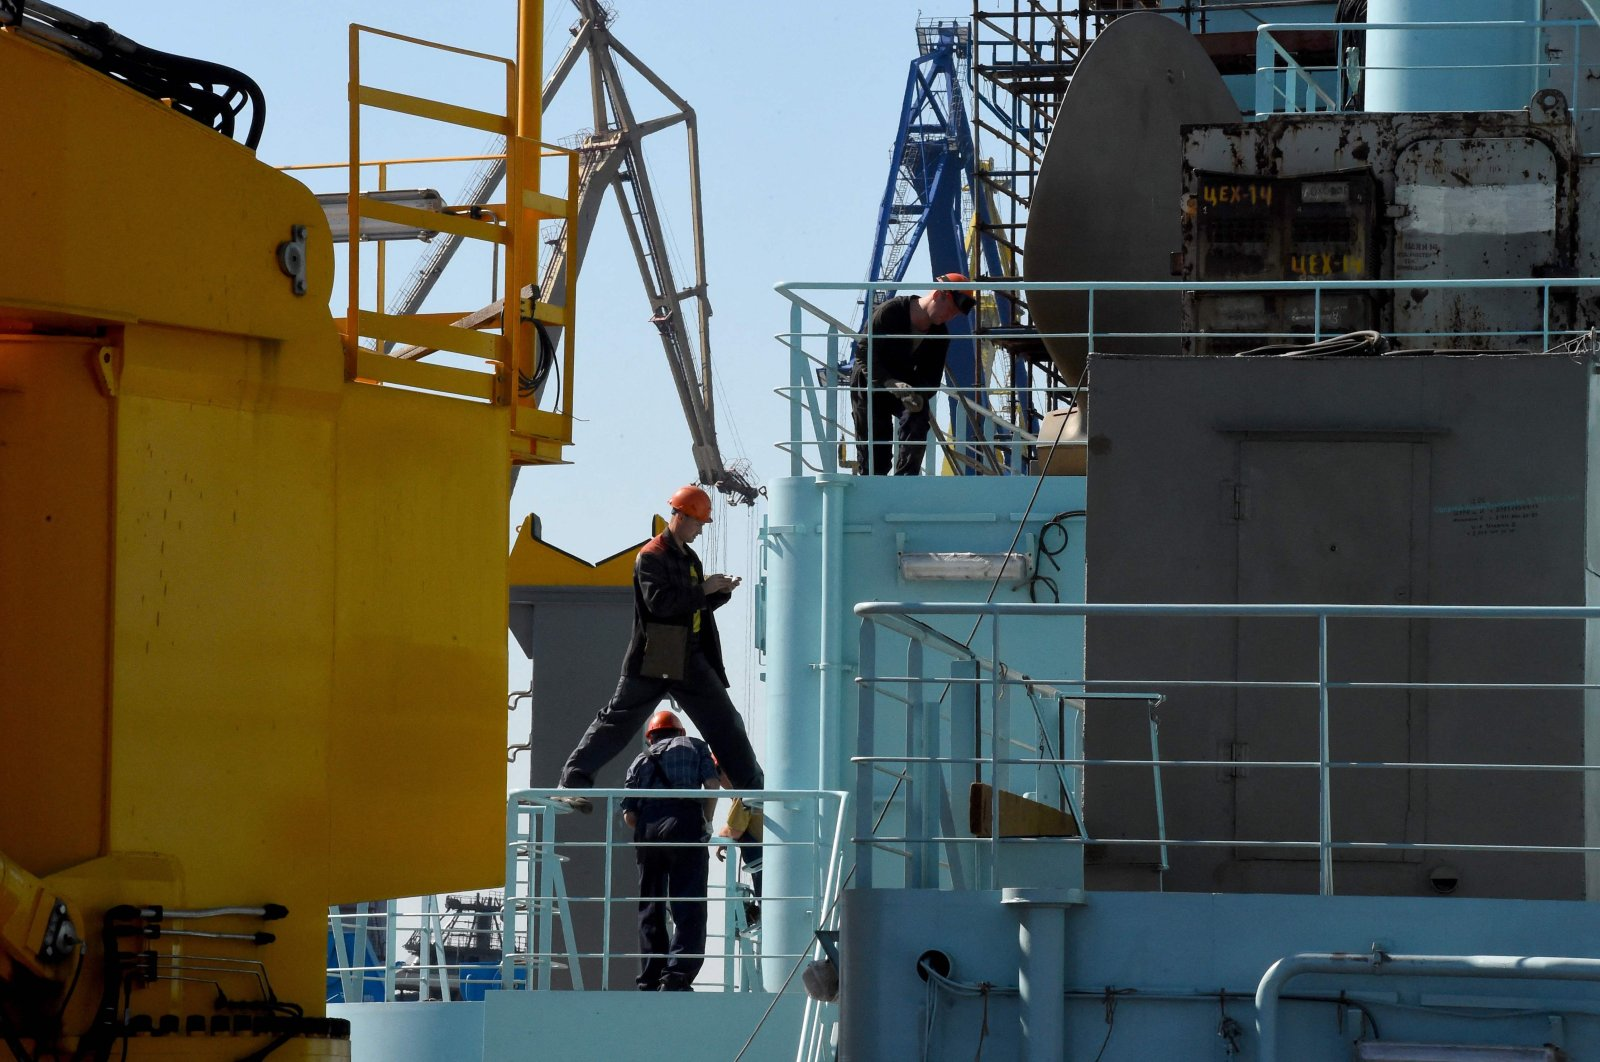 Workers seen as they work on the deck of Russia's nuclear-powered icebreaker Sibir during construction at the Baltic Shipyard in Saint-Petersburg, Russia, July 5, 2021. (AFP Photo)